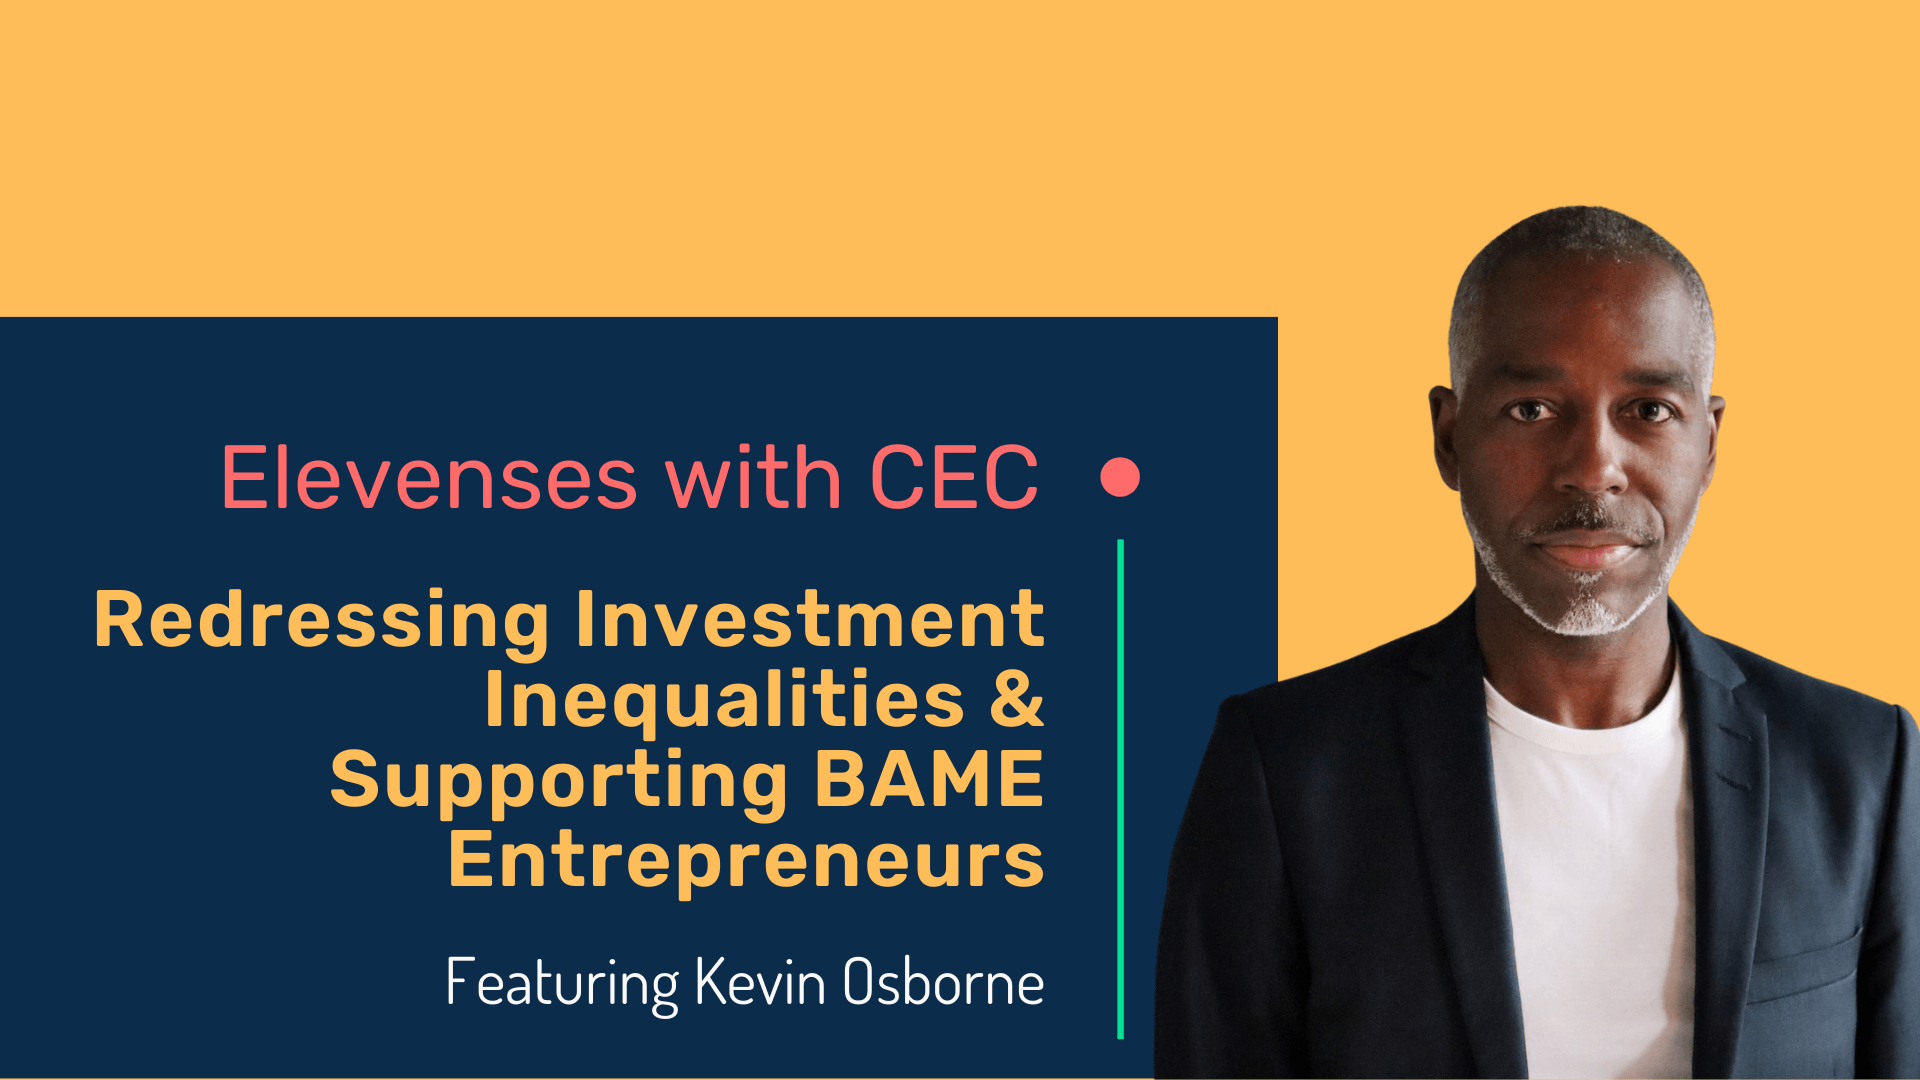 Redressing investment inequalities & supporting BAME entrepreneurs with Kevin Osborne